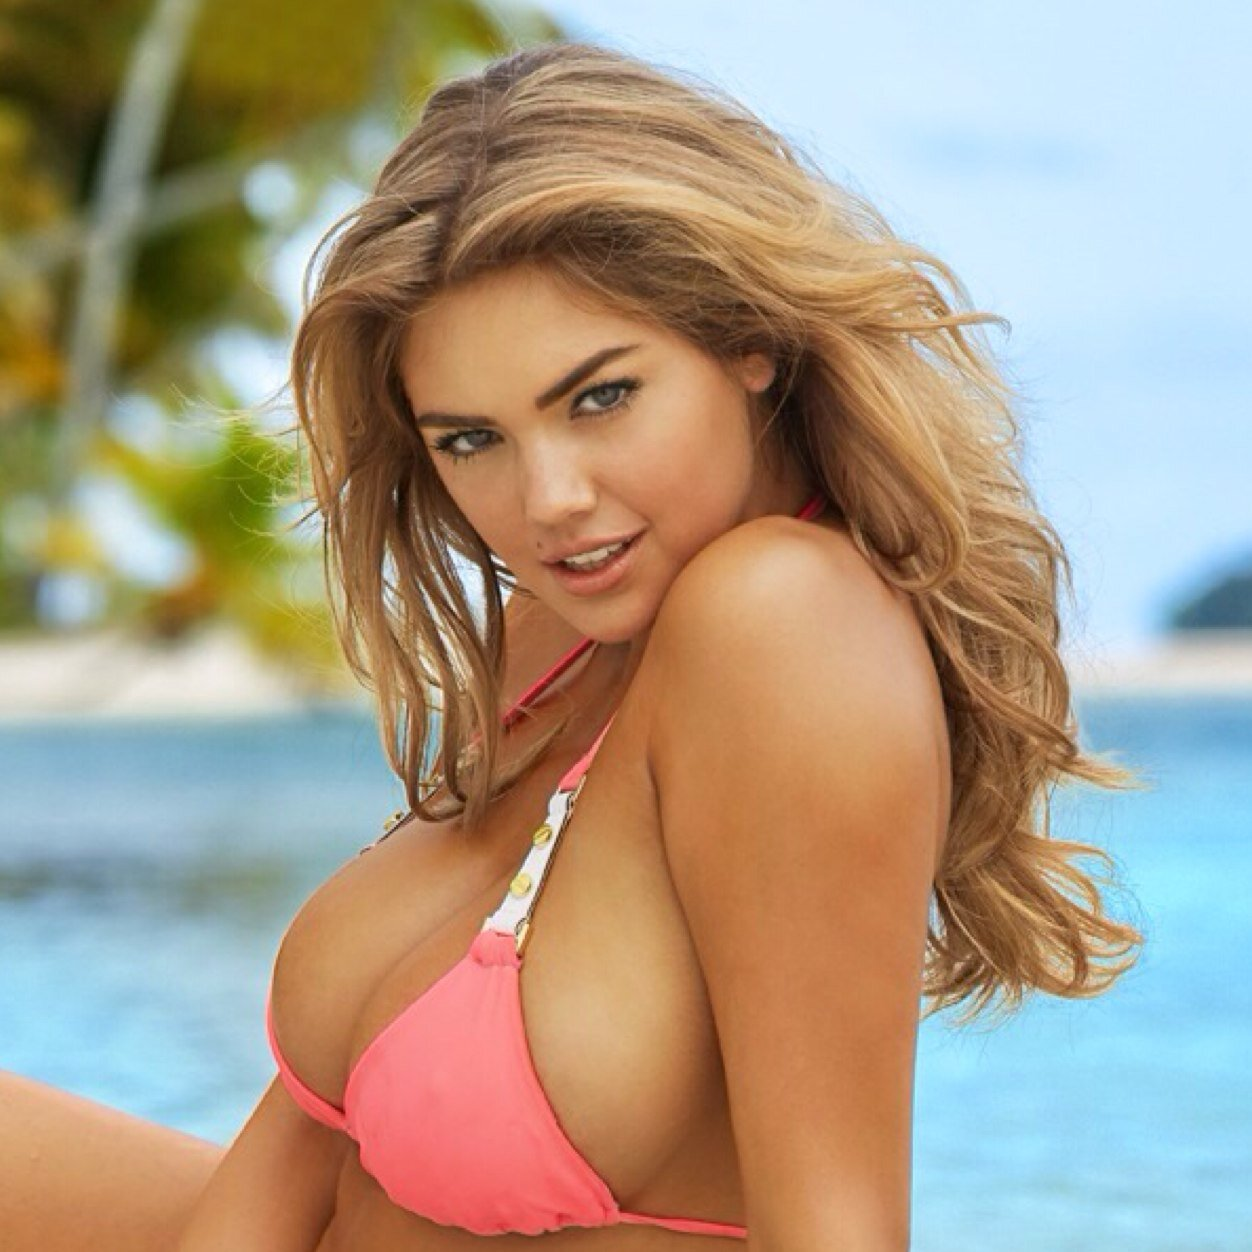 Kate upton named the sexiest woman in the world by maxim as she poses in busty shoot as the cover star